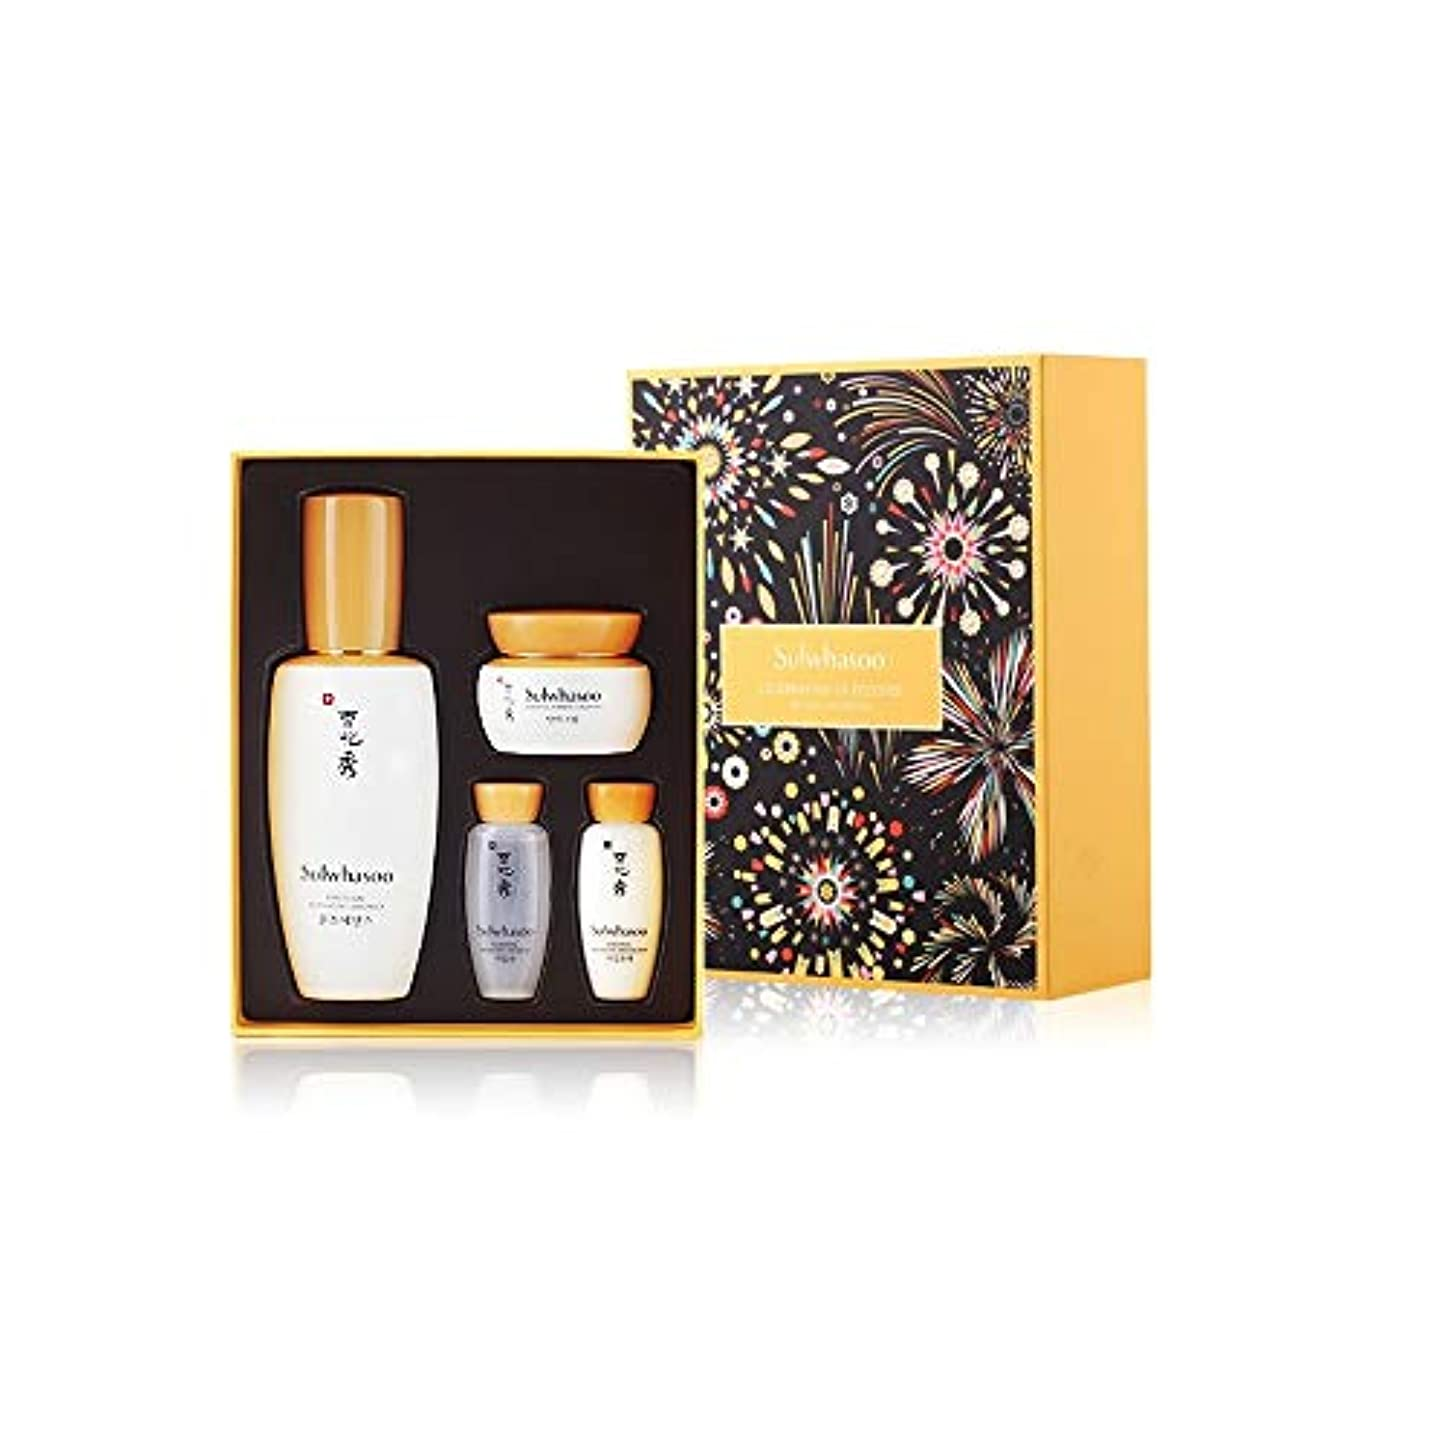 [Sulwhasoo] ソルファス ユンジョエッセンス EX 90ml ホリディコレクション 限定版(Celebration Of Festive5 Holiday Collection First Care Activating...